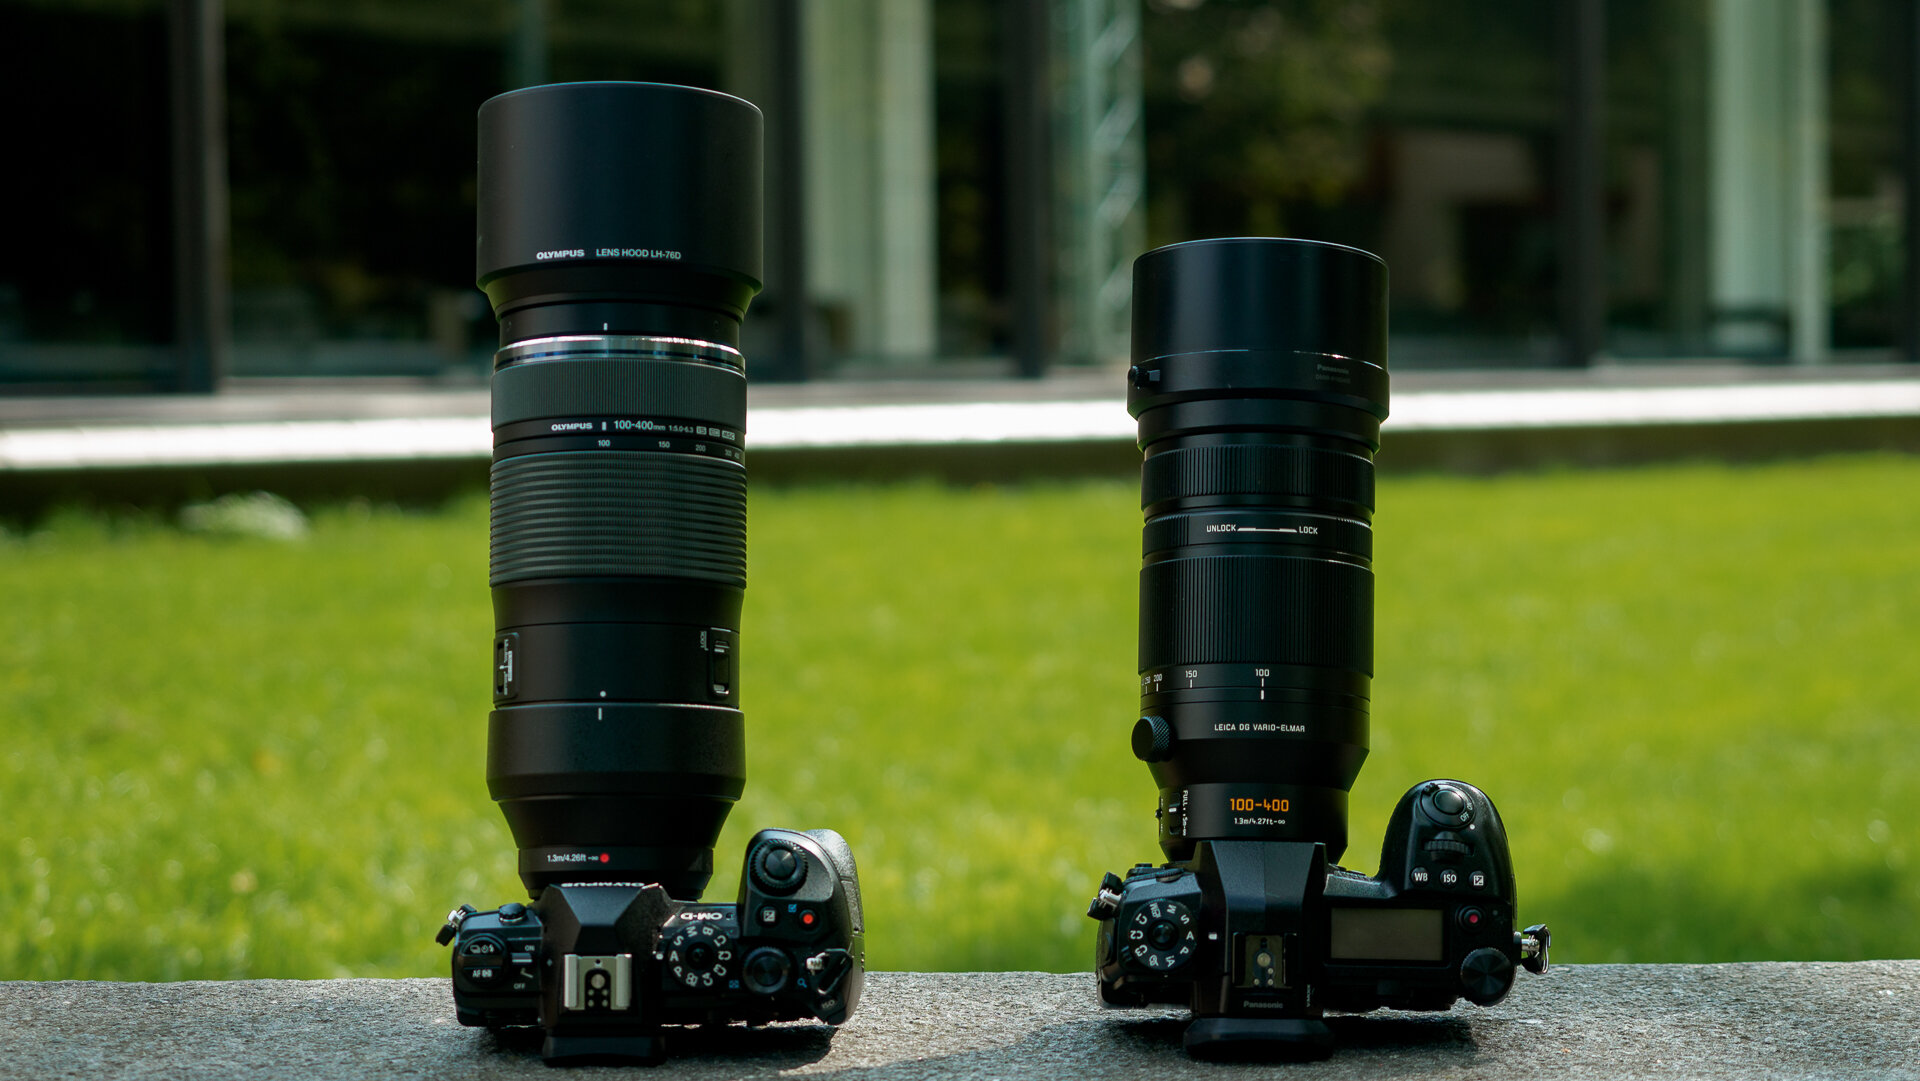 Olympus 100-400mm vs. Panasonic 100-400mm - [WHICH one to get?]